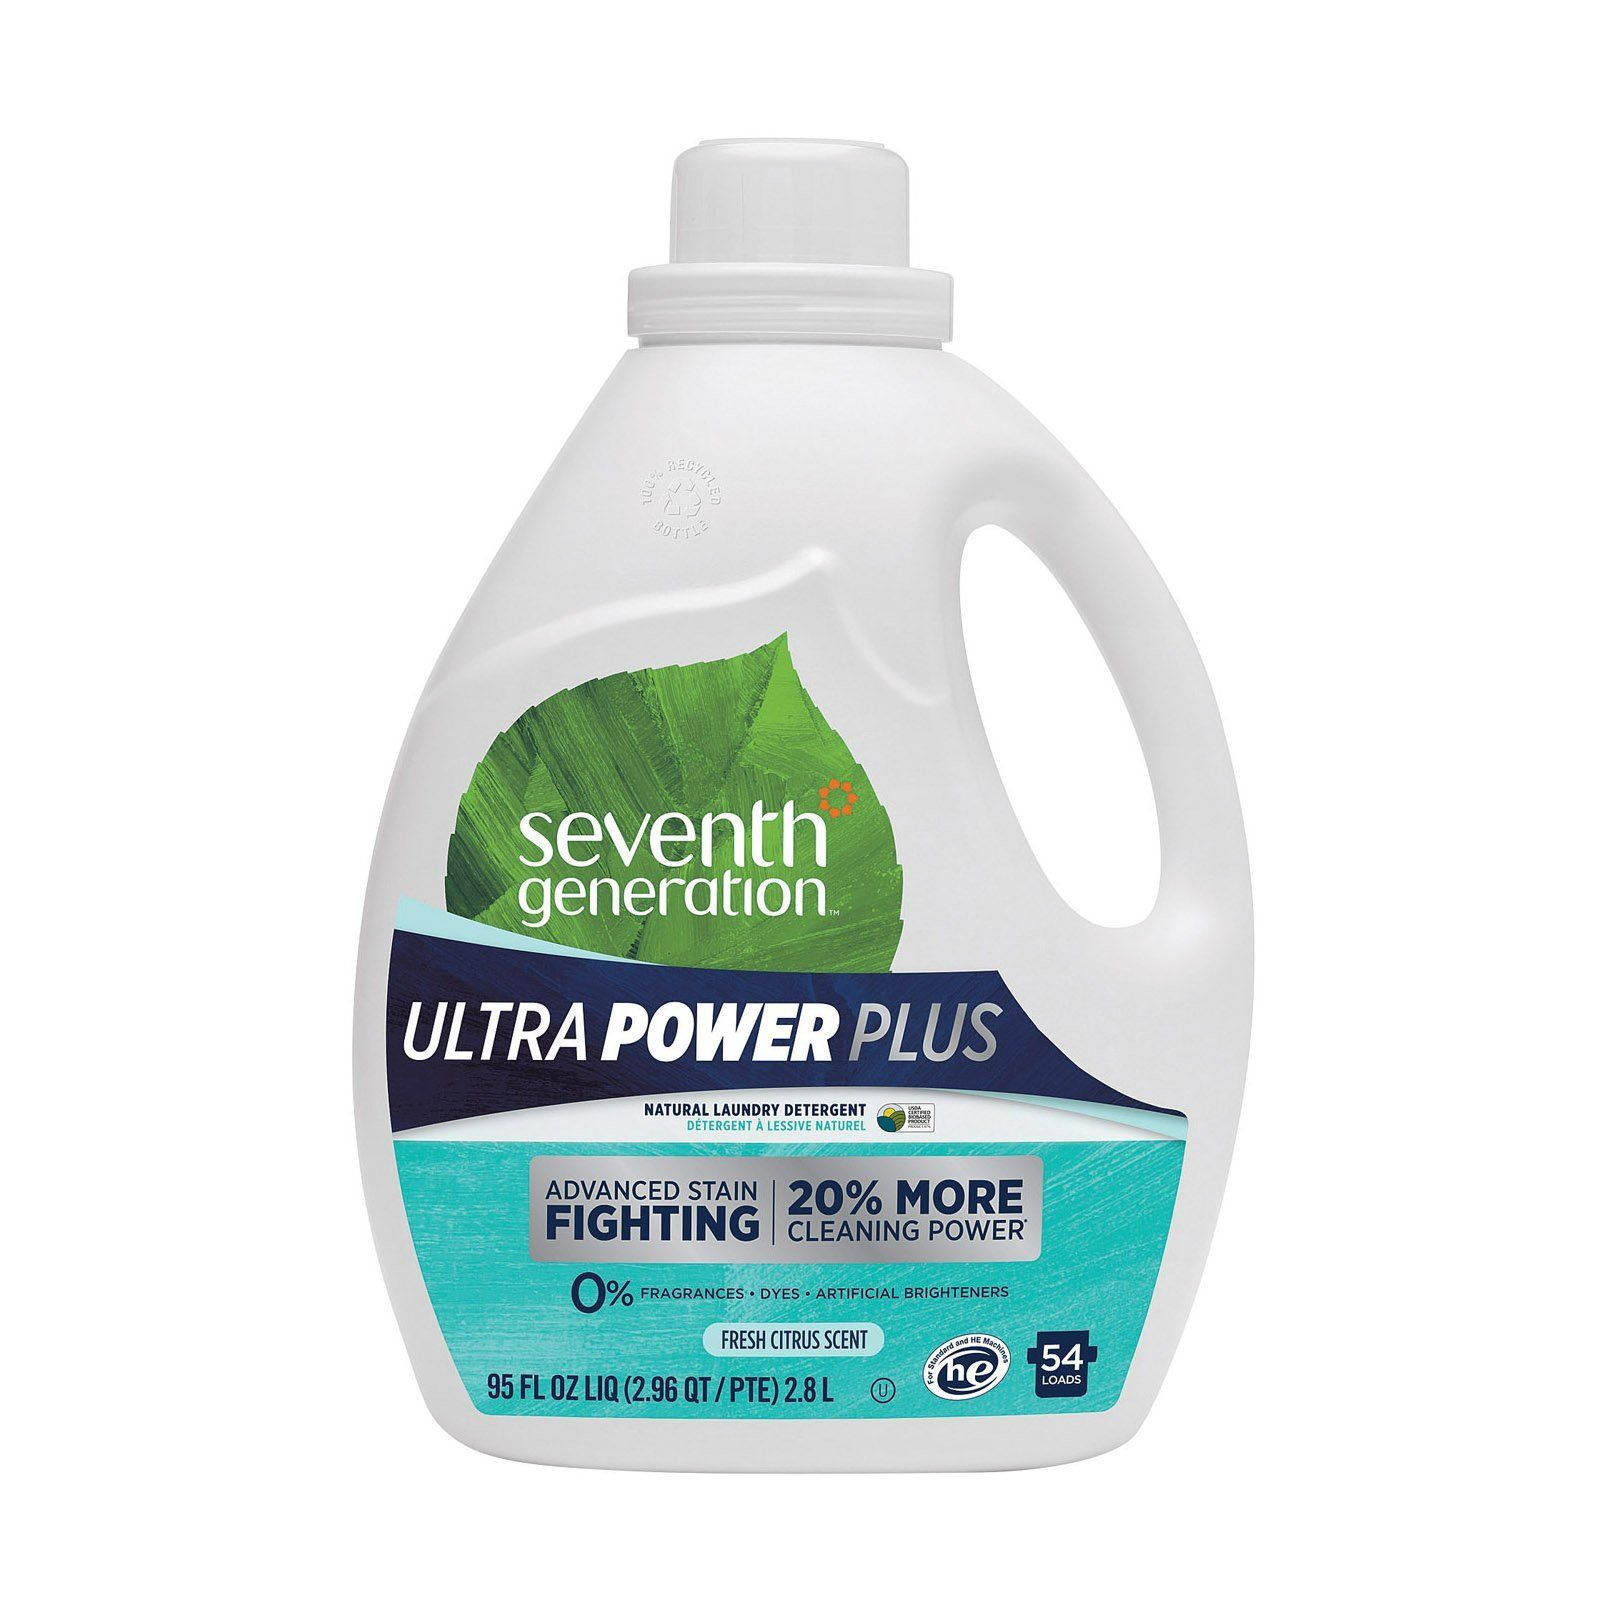 Seventh Generation Ultra Power Plus Natural Laundry Detergent